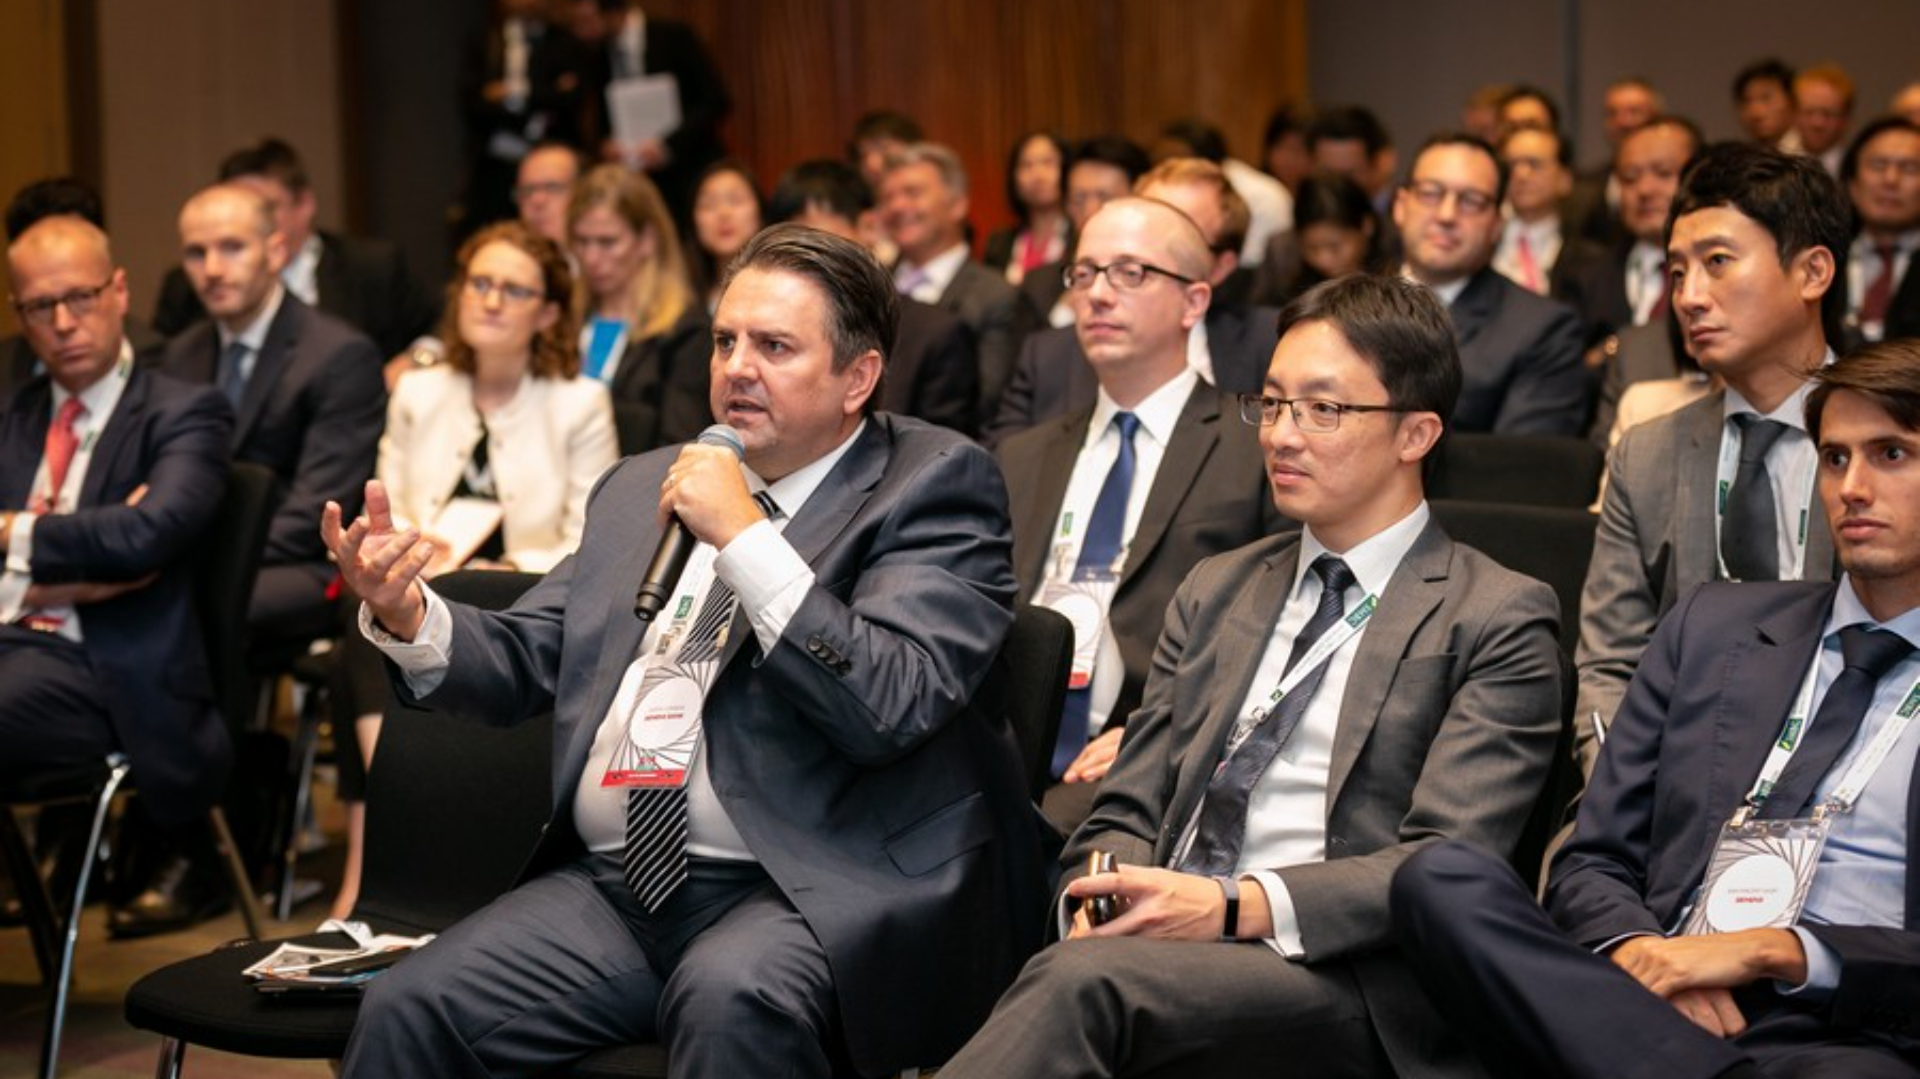 Regional leaders' panel: Flying the flag for APAC - Live Q&A